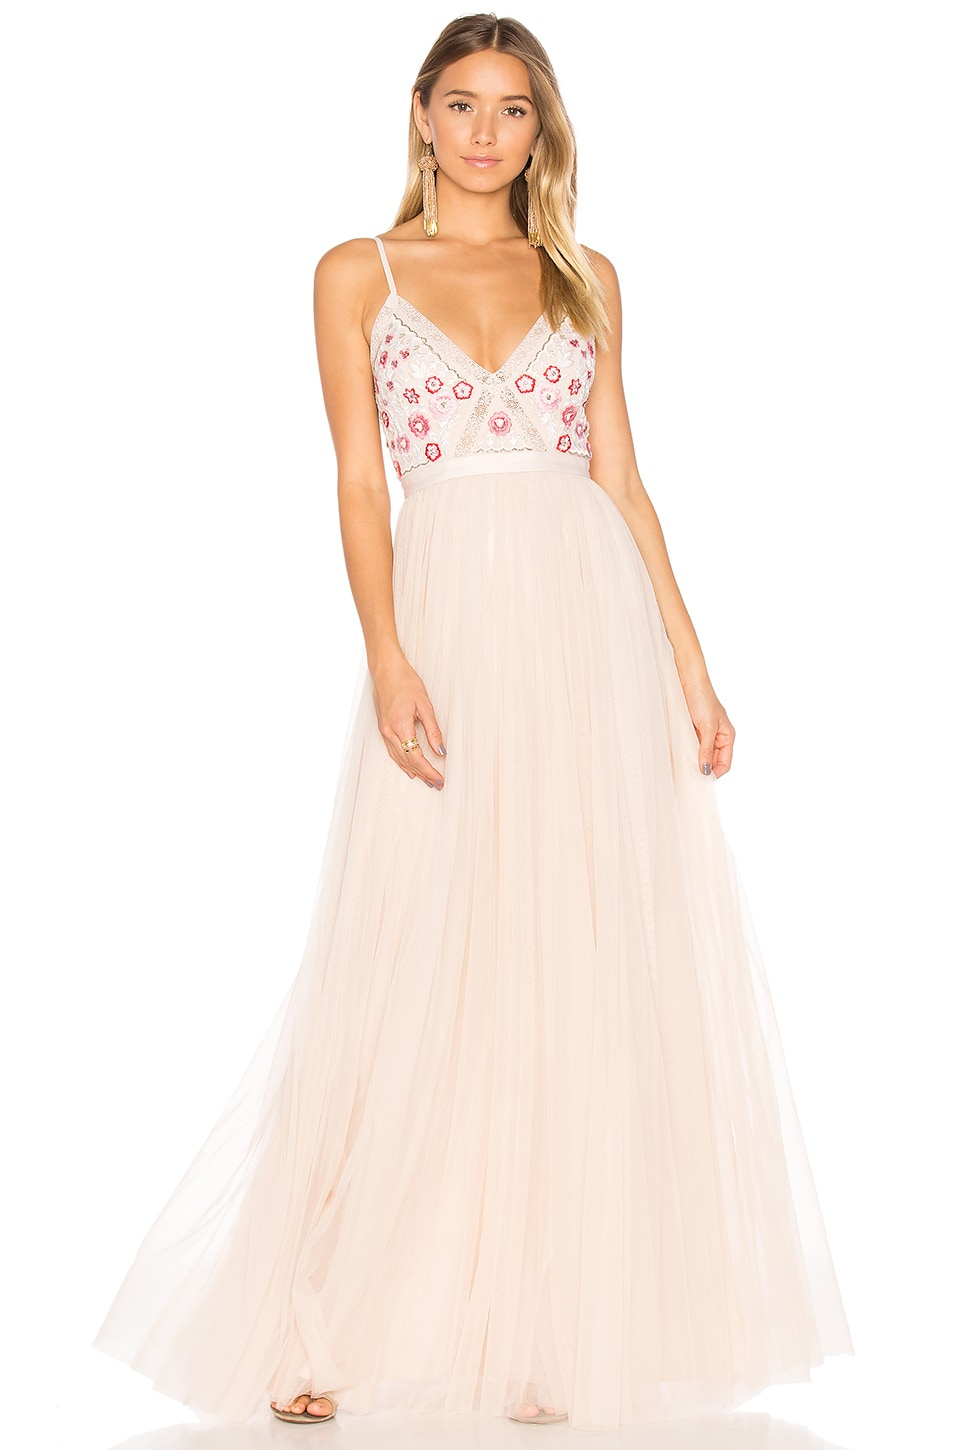 Needle & Thread Prairie Embroidery Maxi Dress in Petal Pink